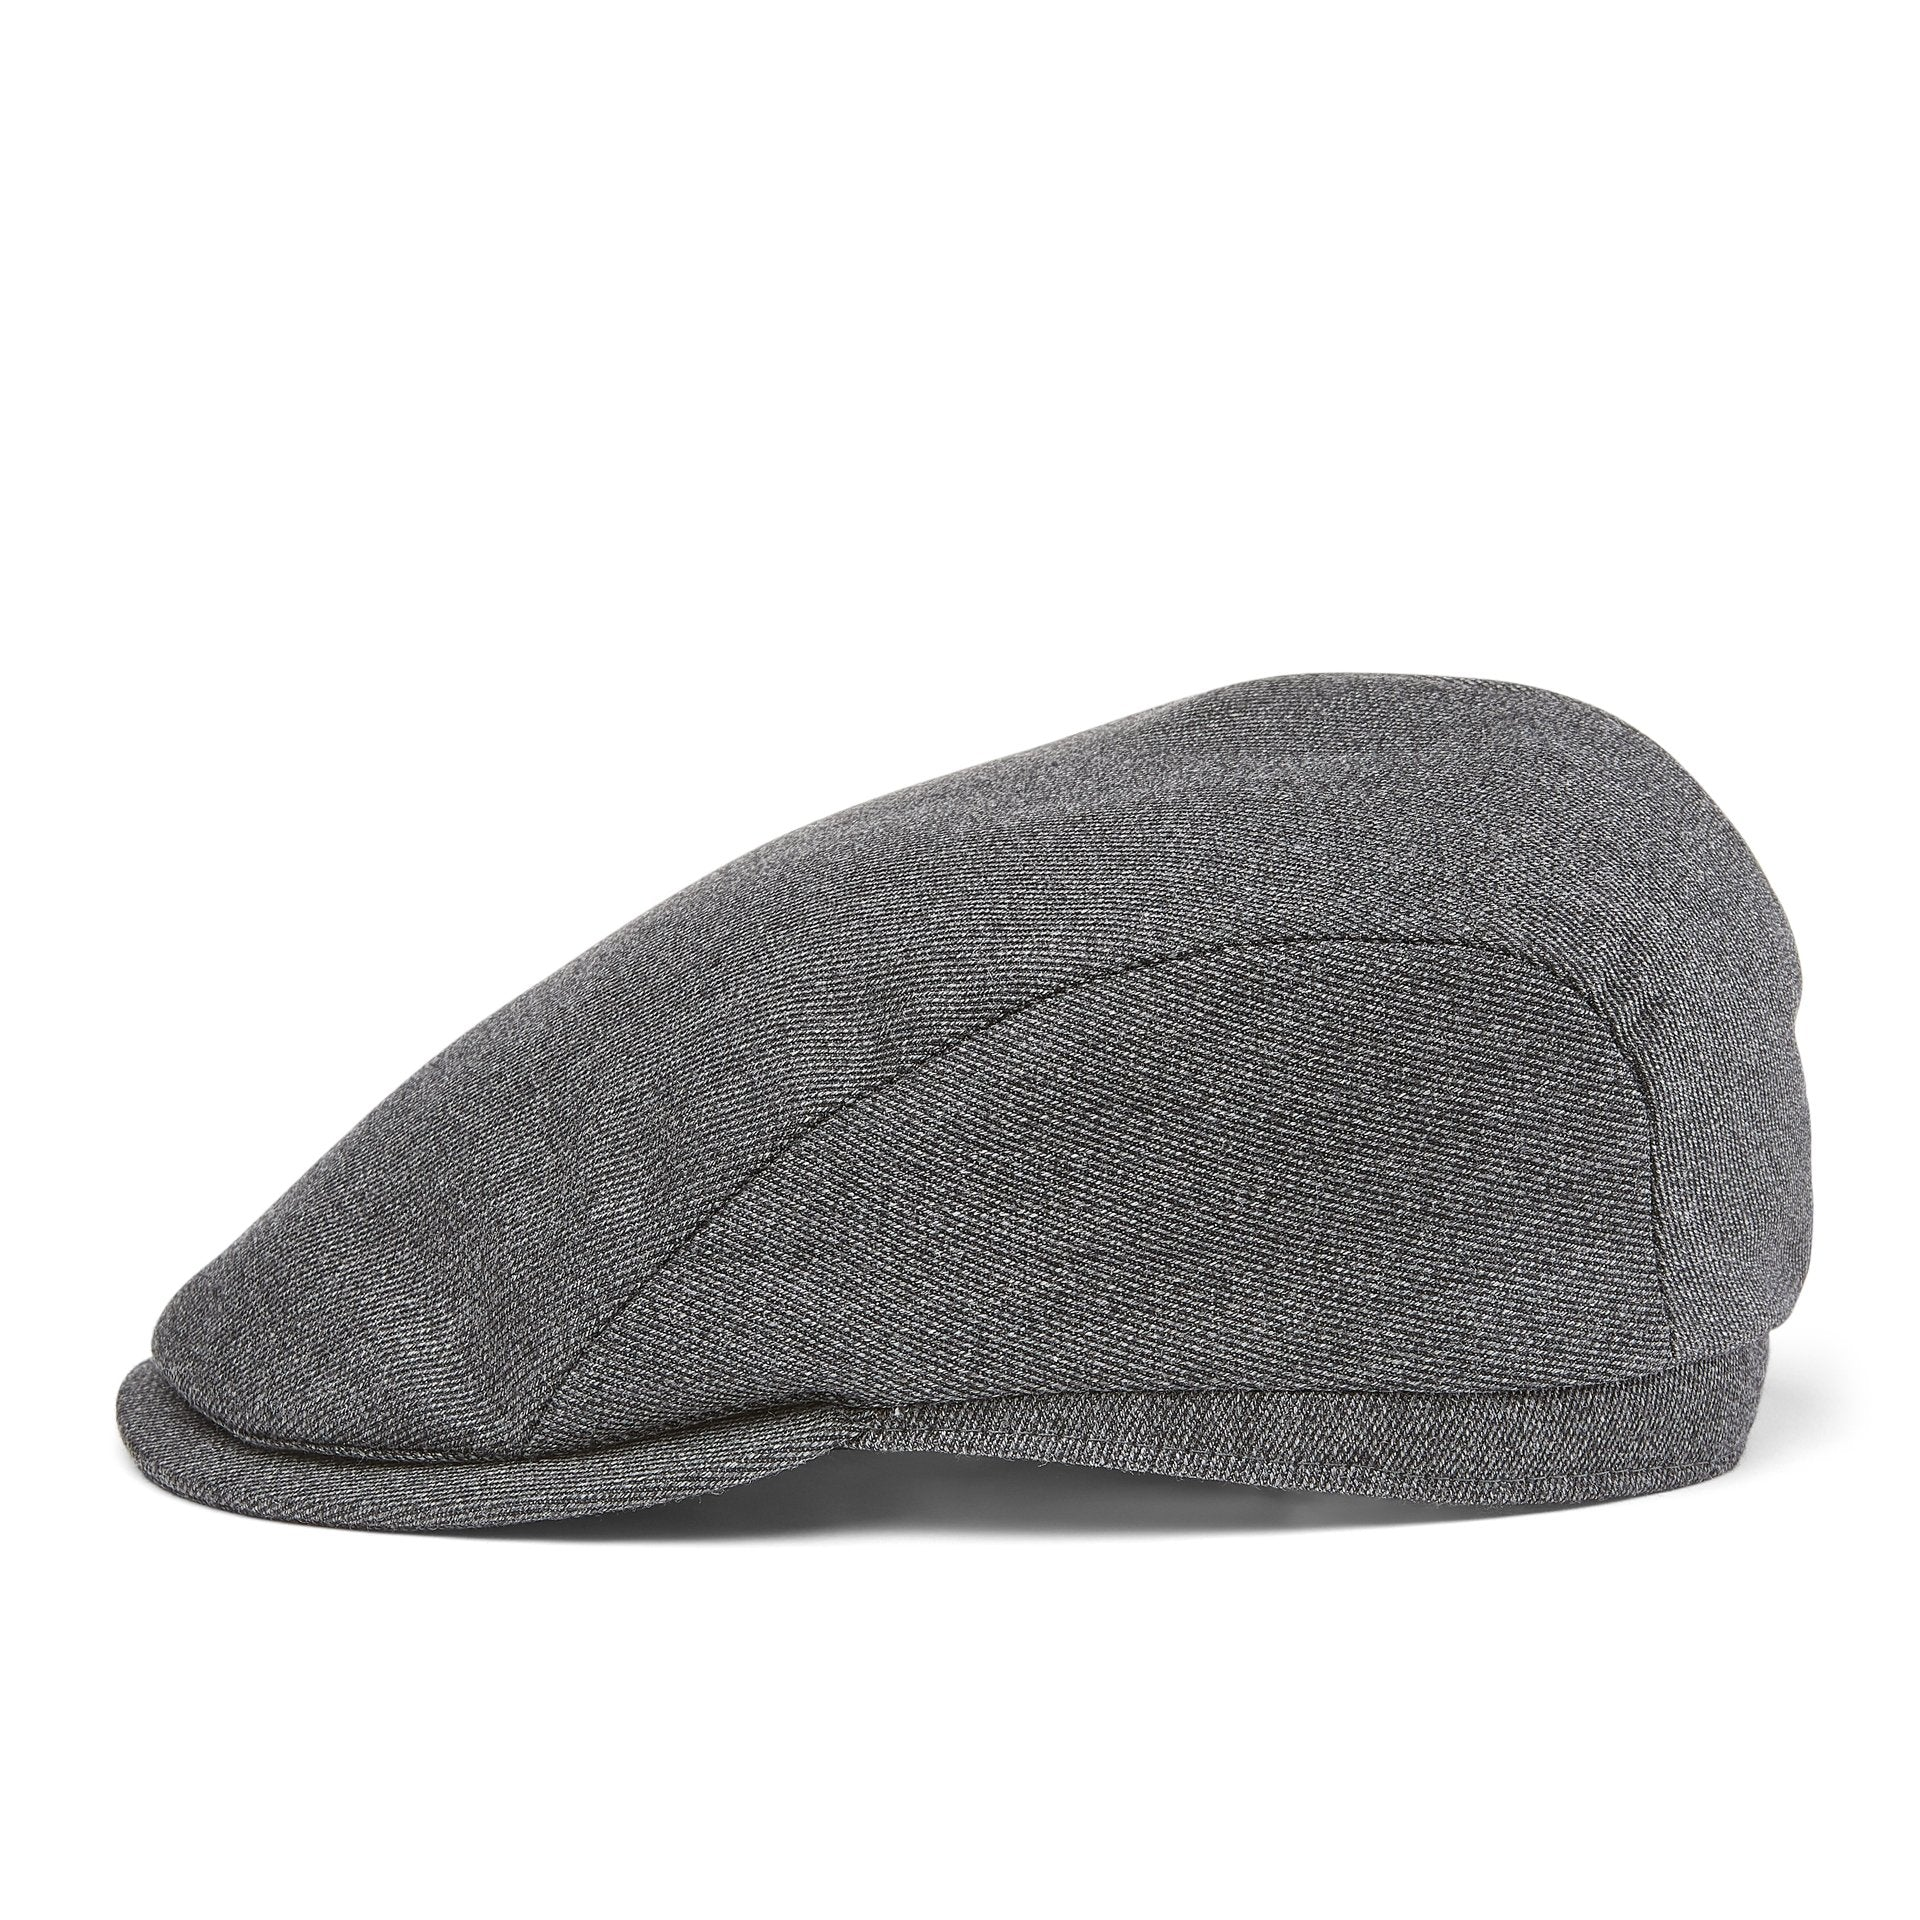 Vitale flat cap - Flat caps - Lock & Co. Hatters London UK